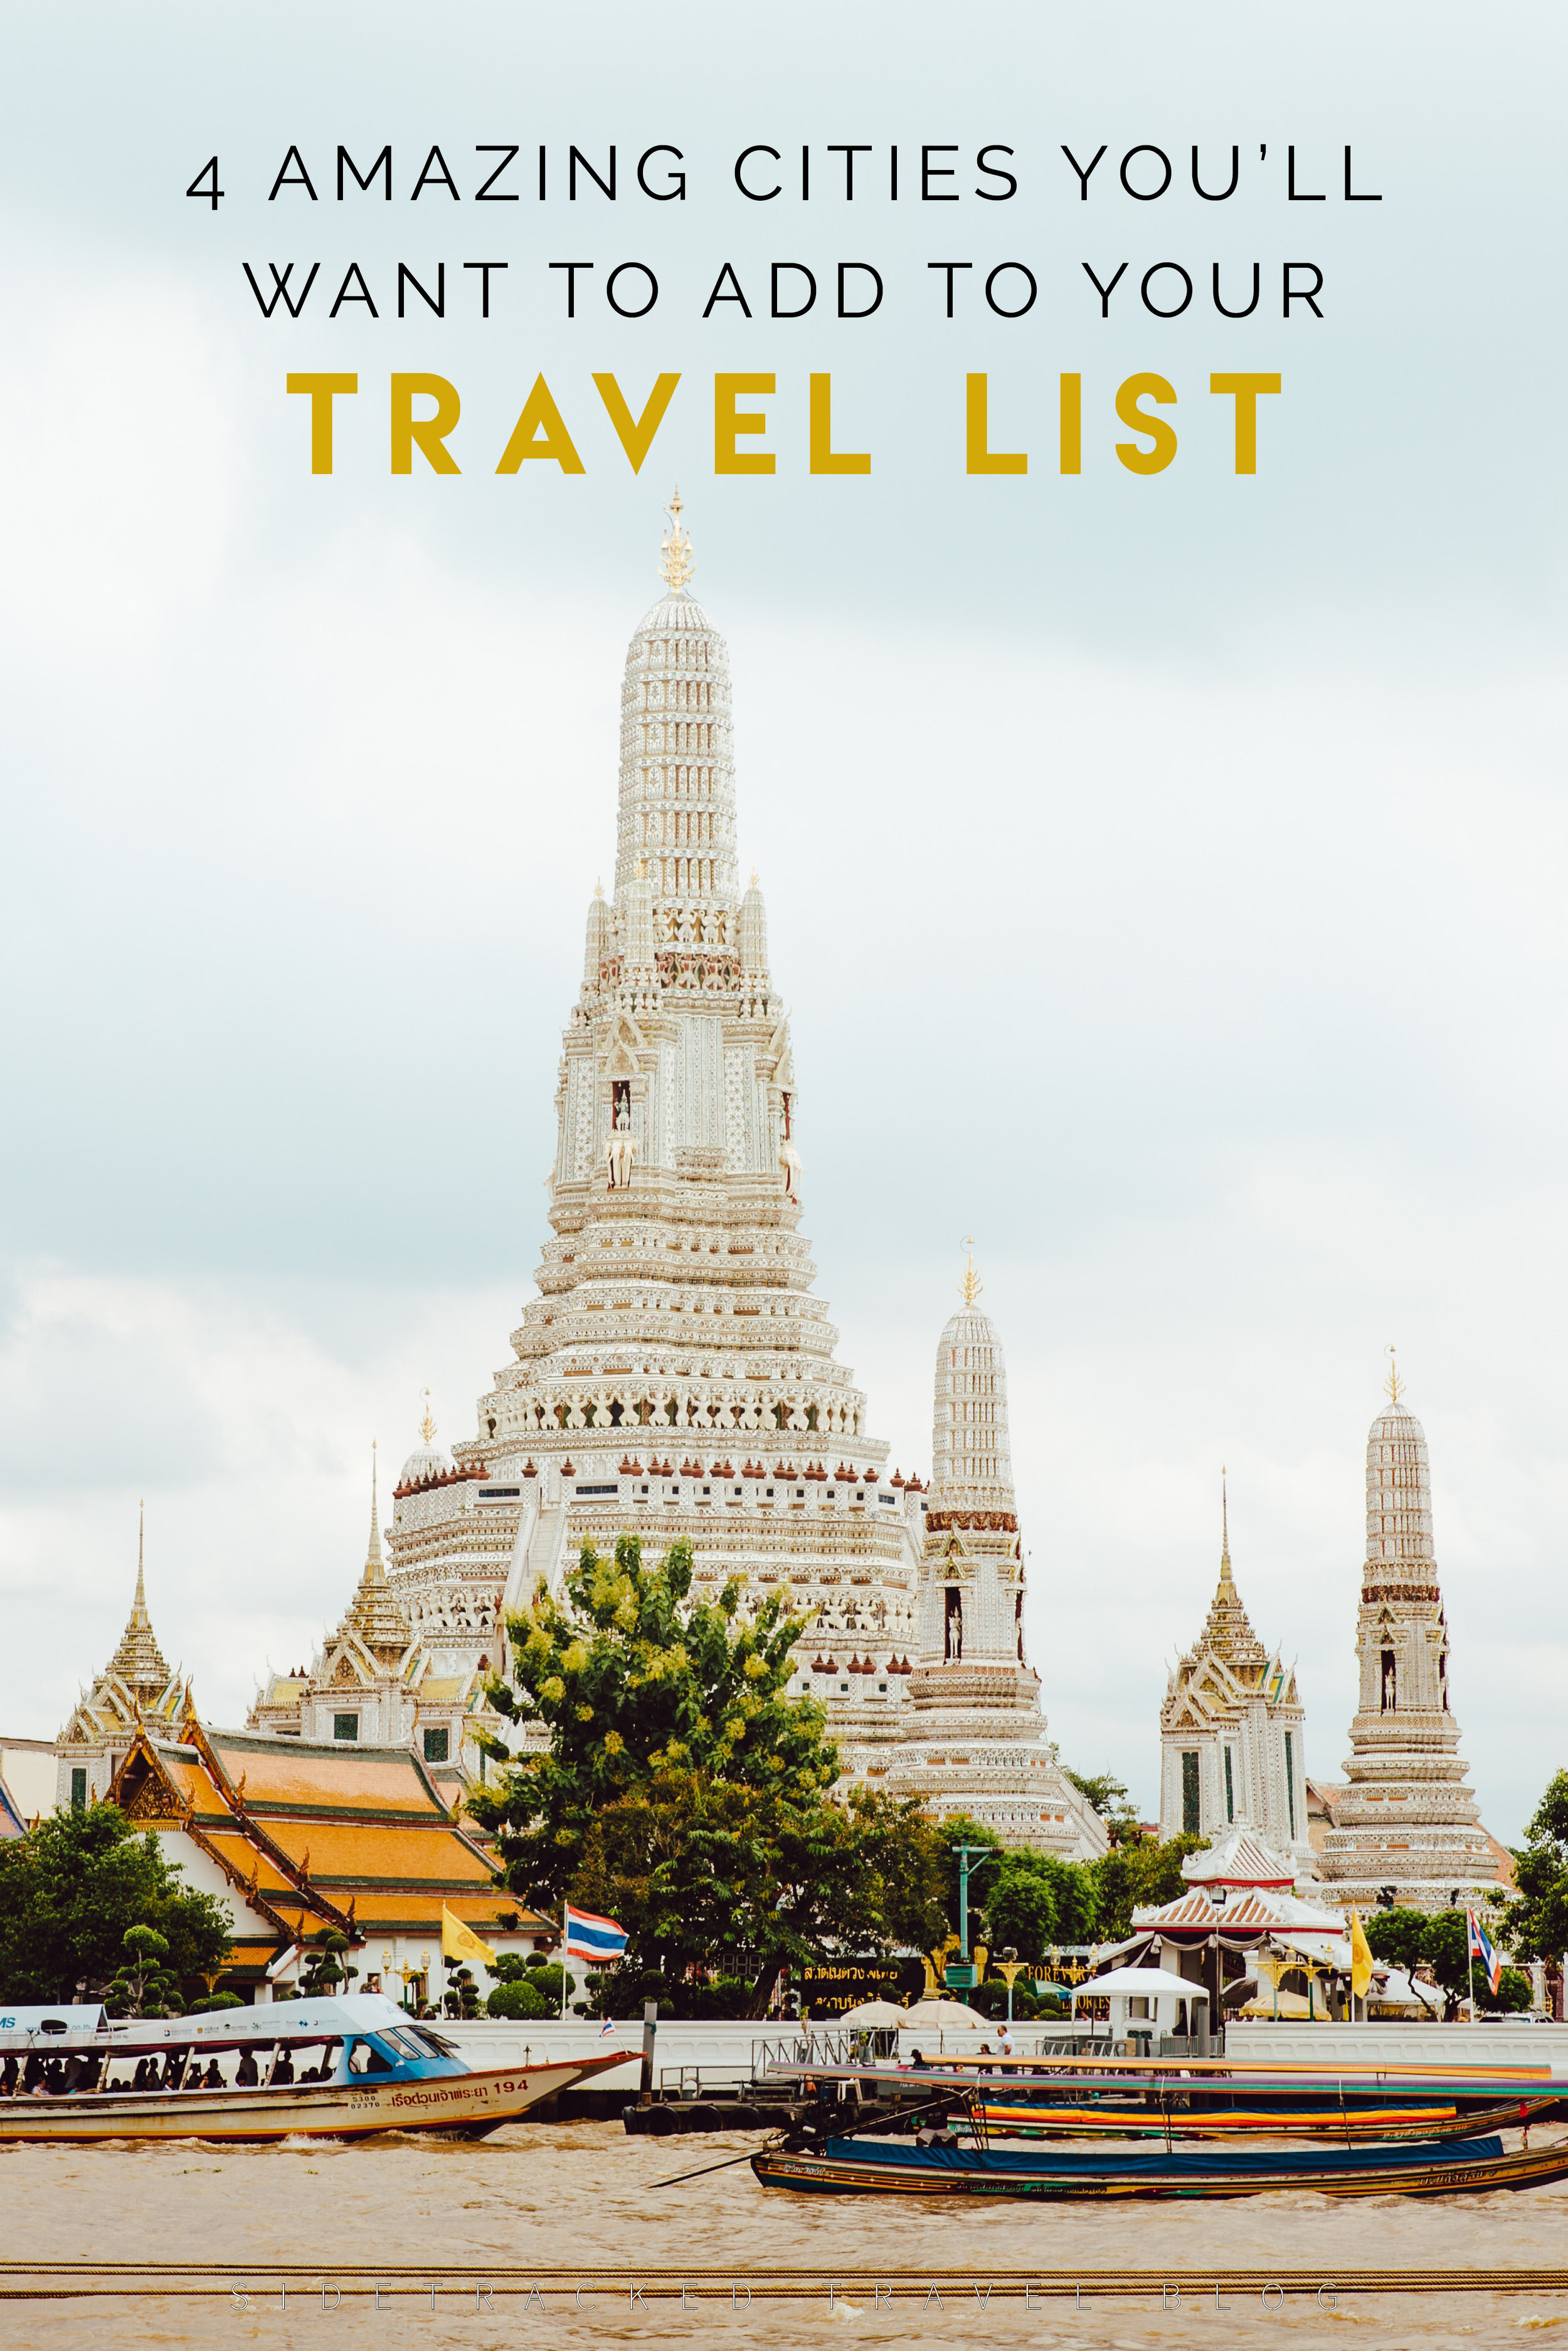 Life is short, so you need to make sure you explore as much of the world as you can, as soon as you can. There are so many amazing cities in the world, each with its own unique history and culture just waiting for you to explore. Here are 4 amazing cities you'll want to add to your travel list right away!